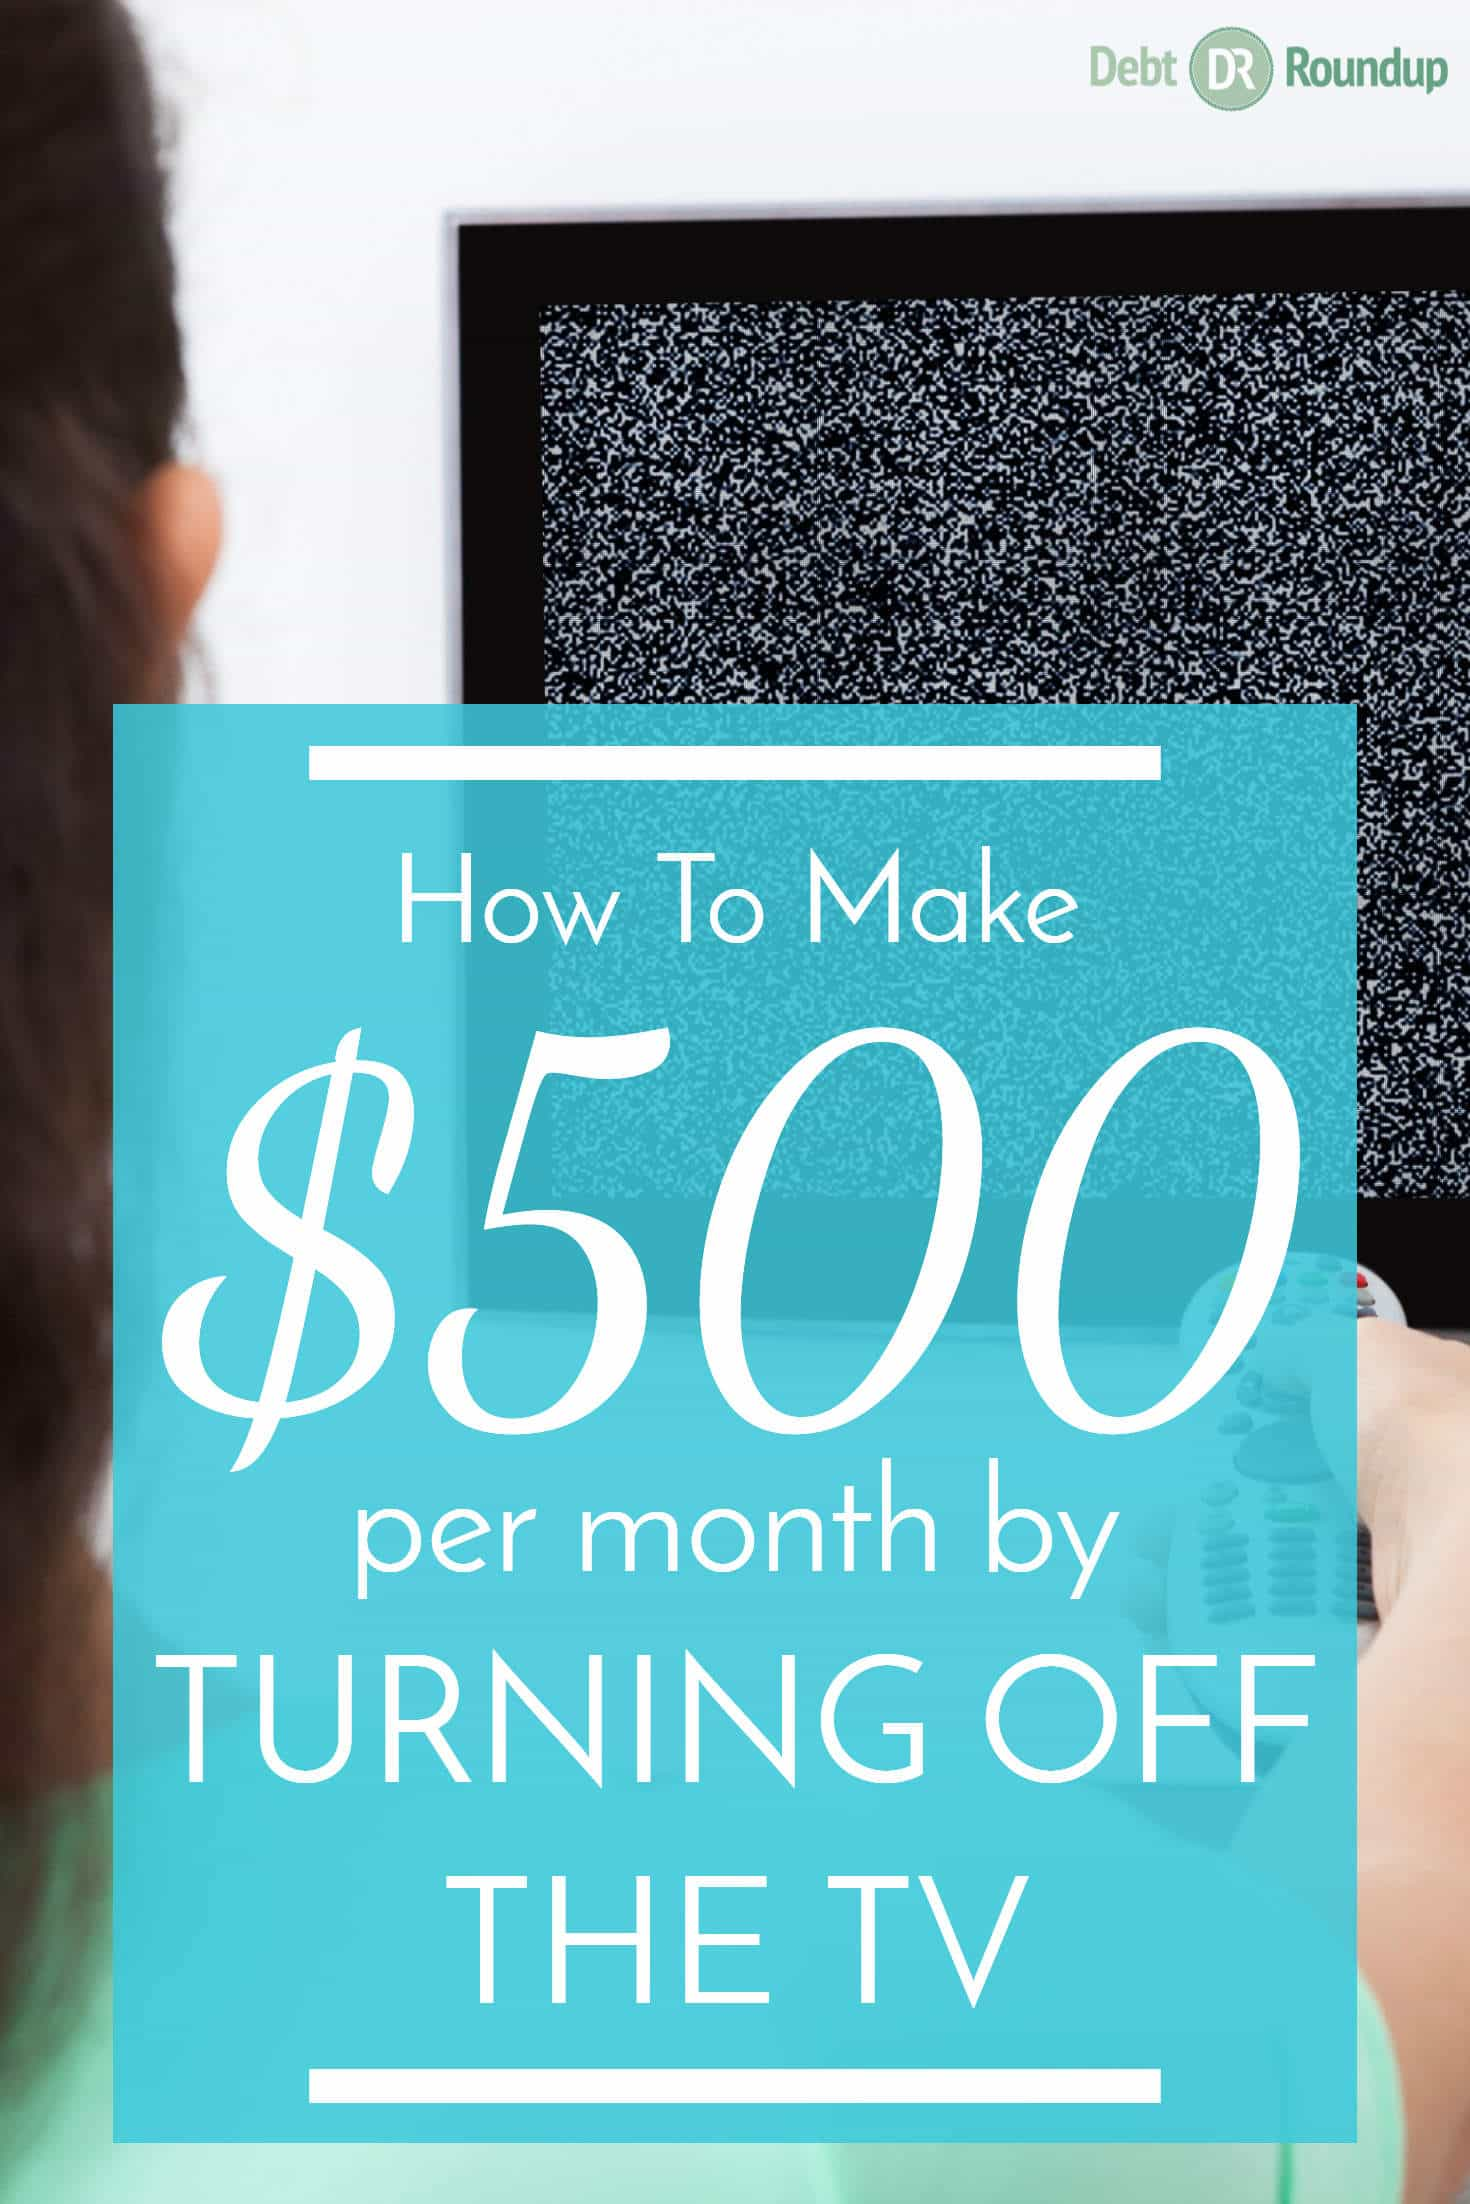 How to earn $500 per month when turning off the TV